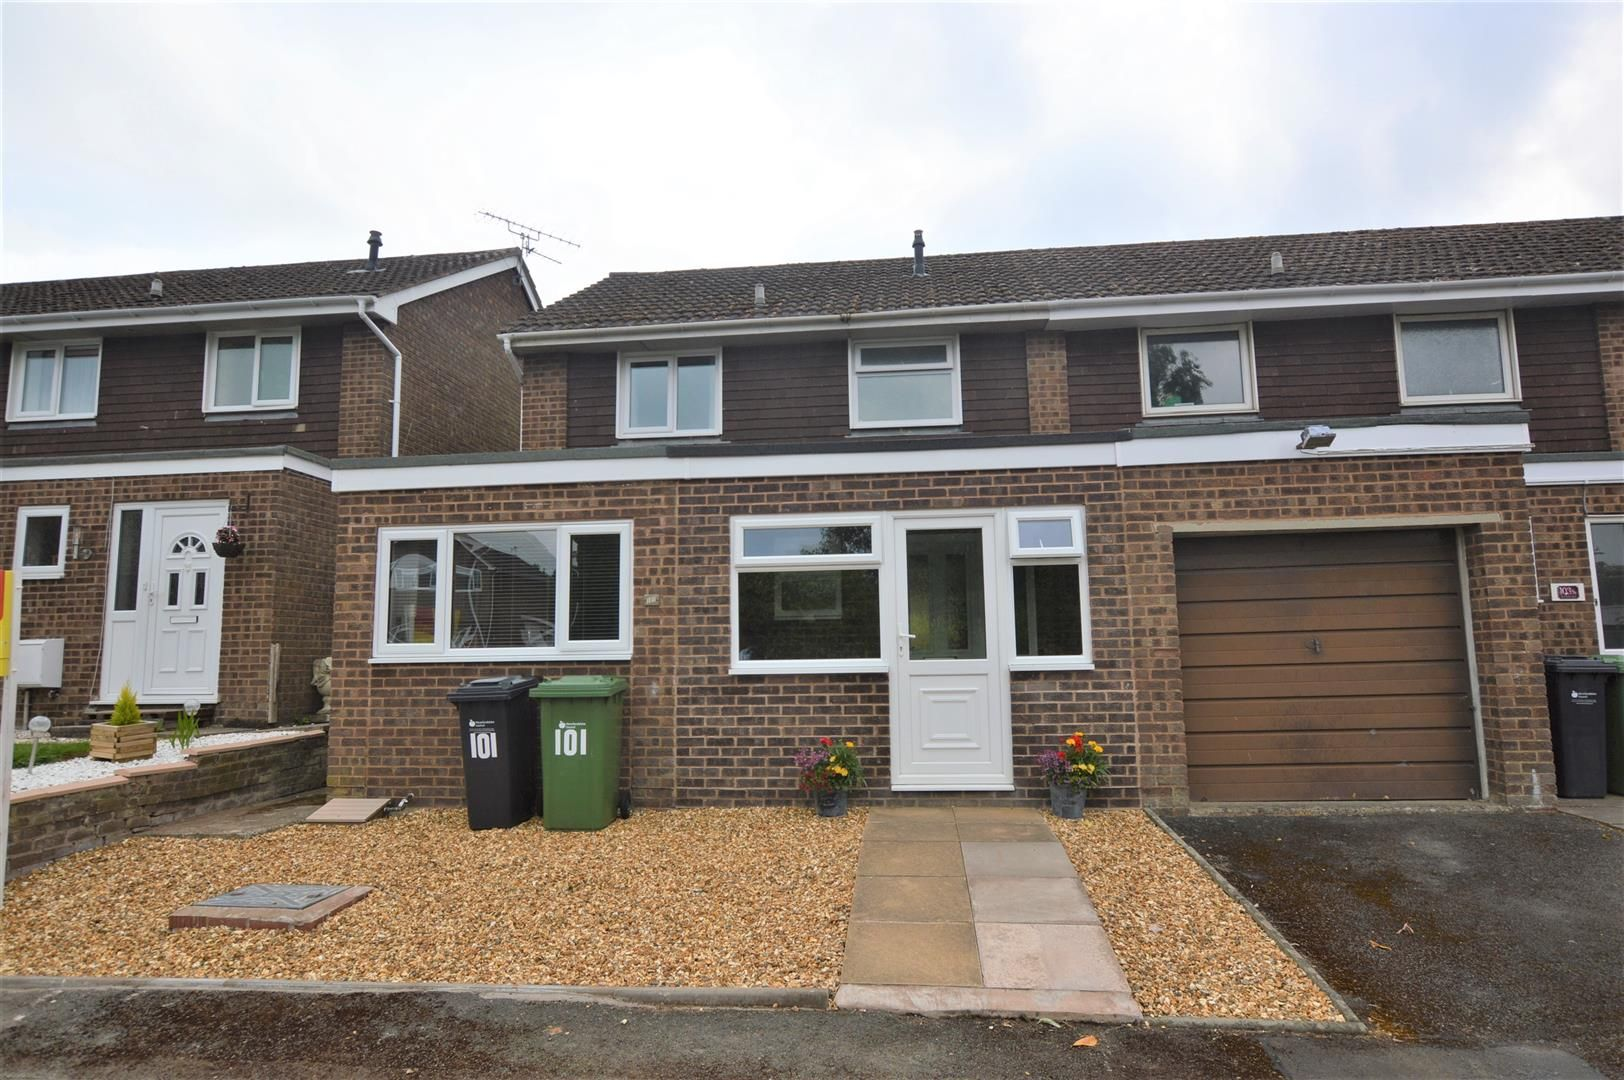 3 bed end-of-terrace for sale in Leominster, HR6